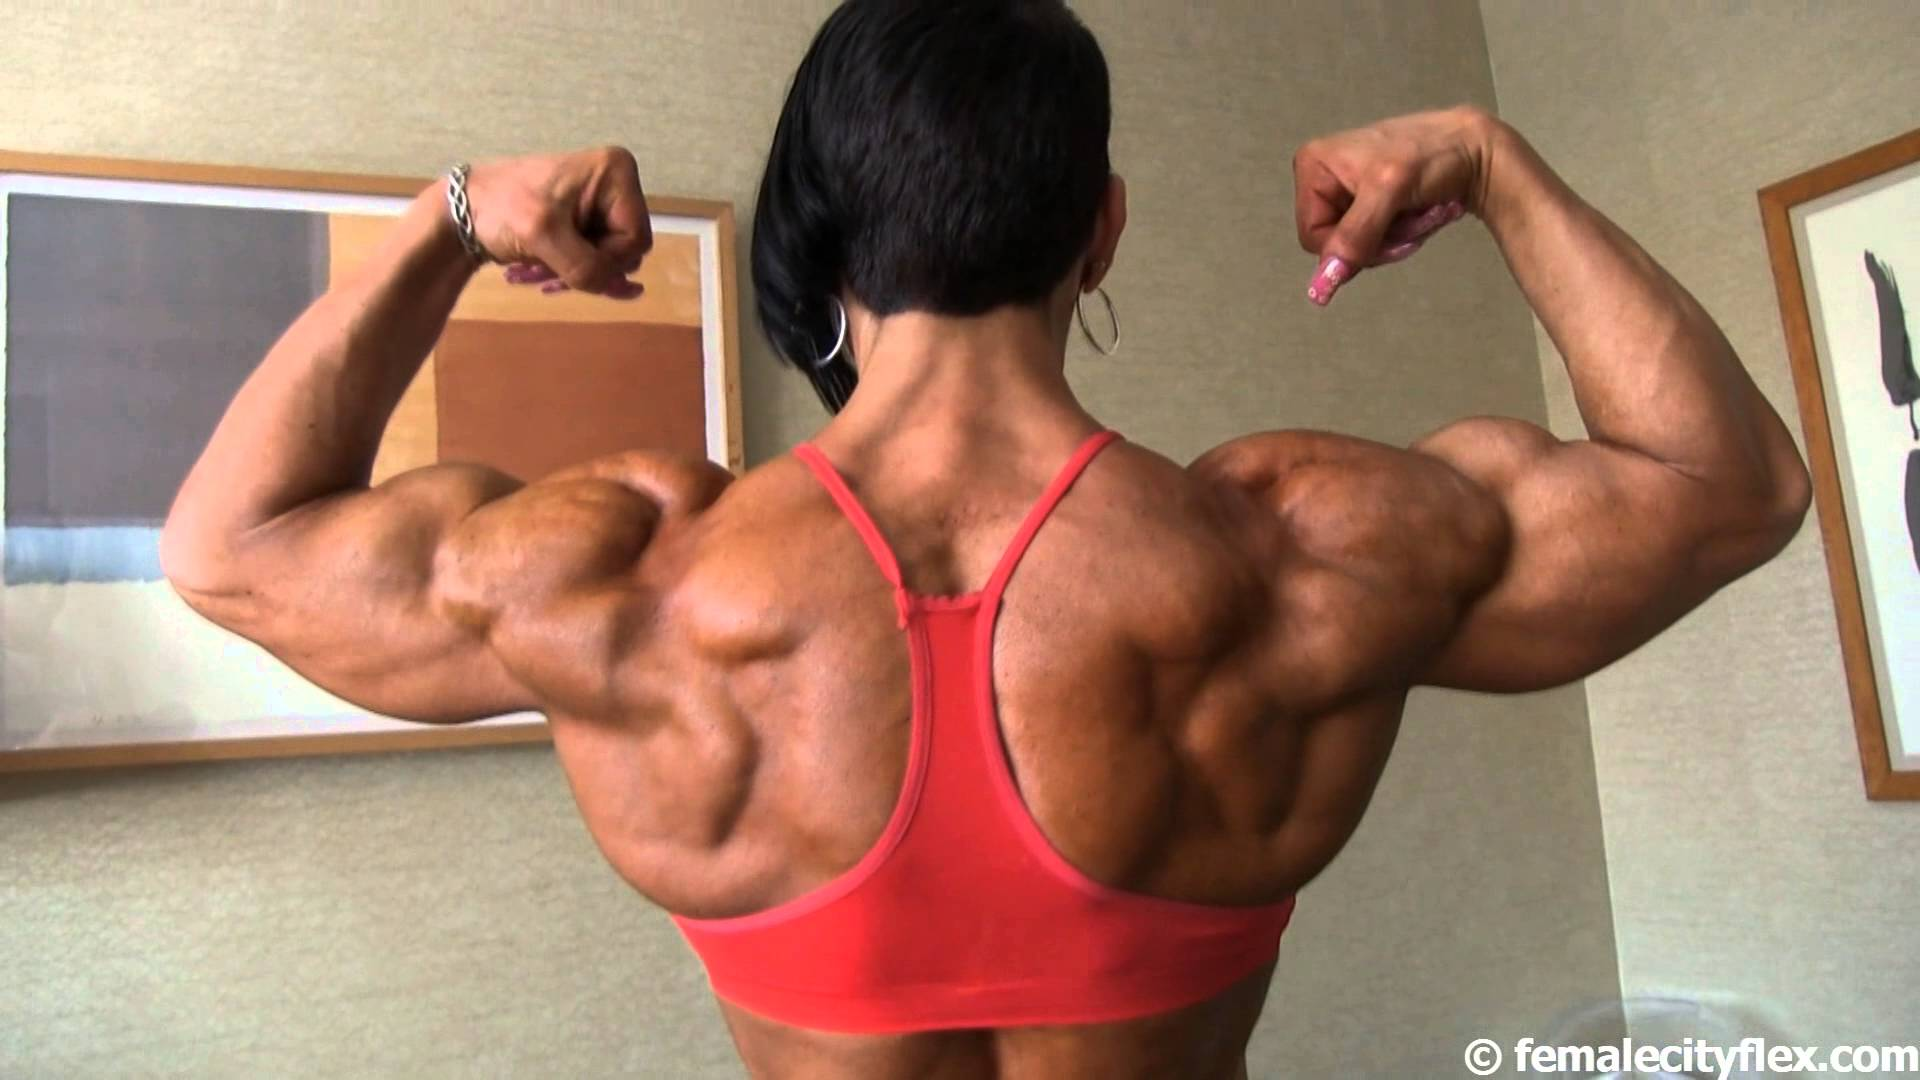 Virginia Sanchez Macias – Back Posing